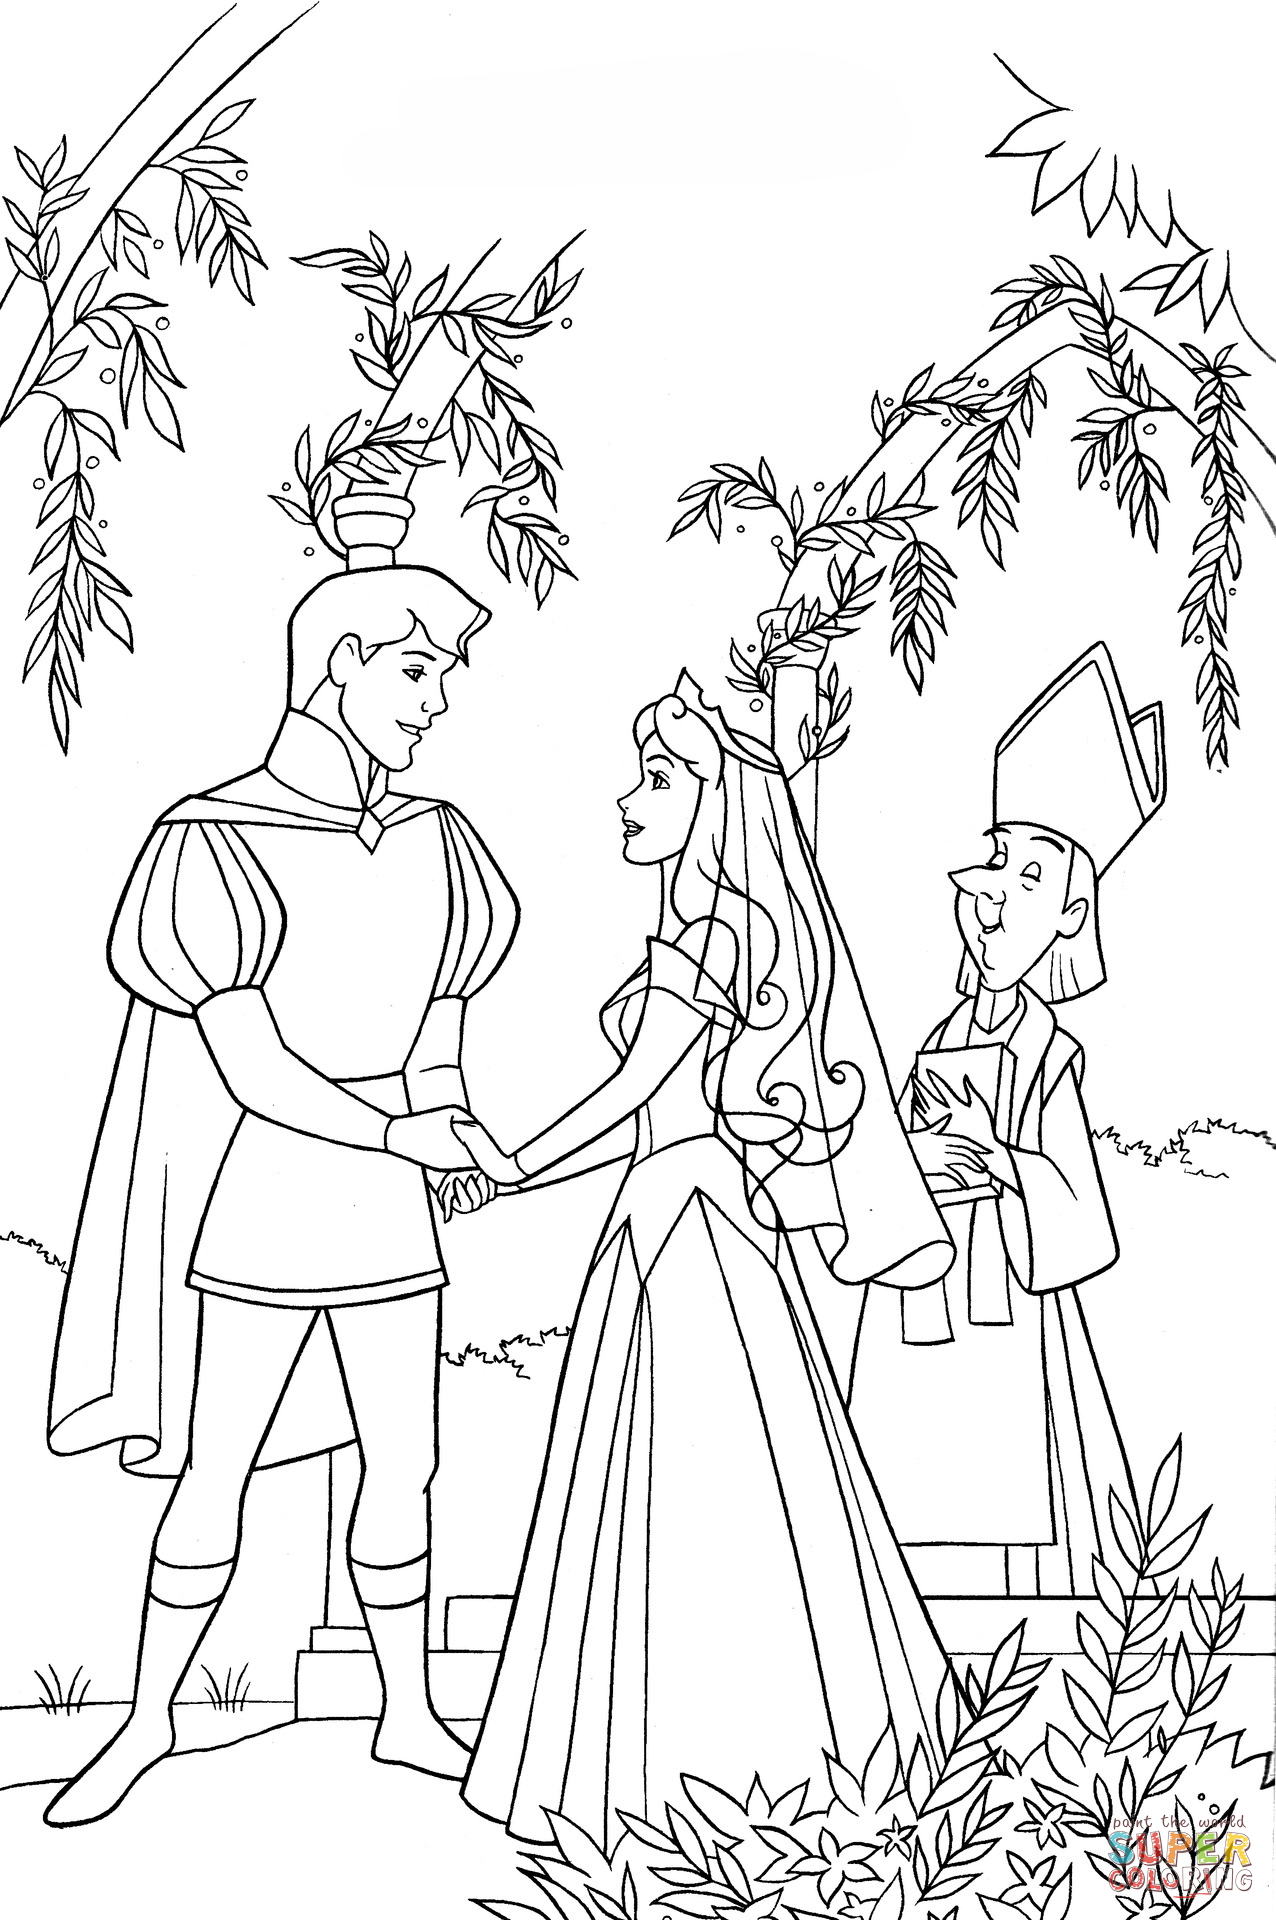 ariel and belle coloring pages princess ariel and prince philip coloring pages to kids ariel coloring belle pages and